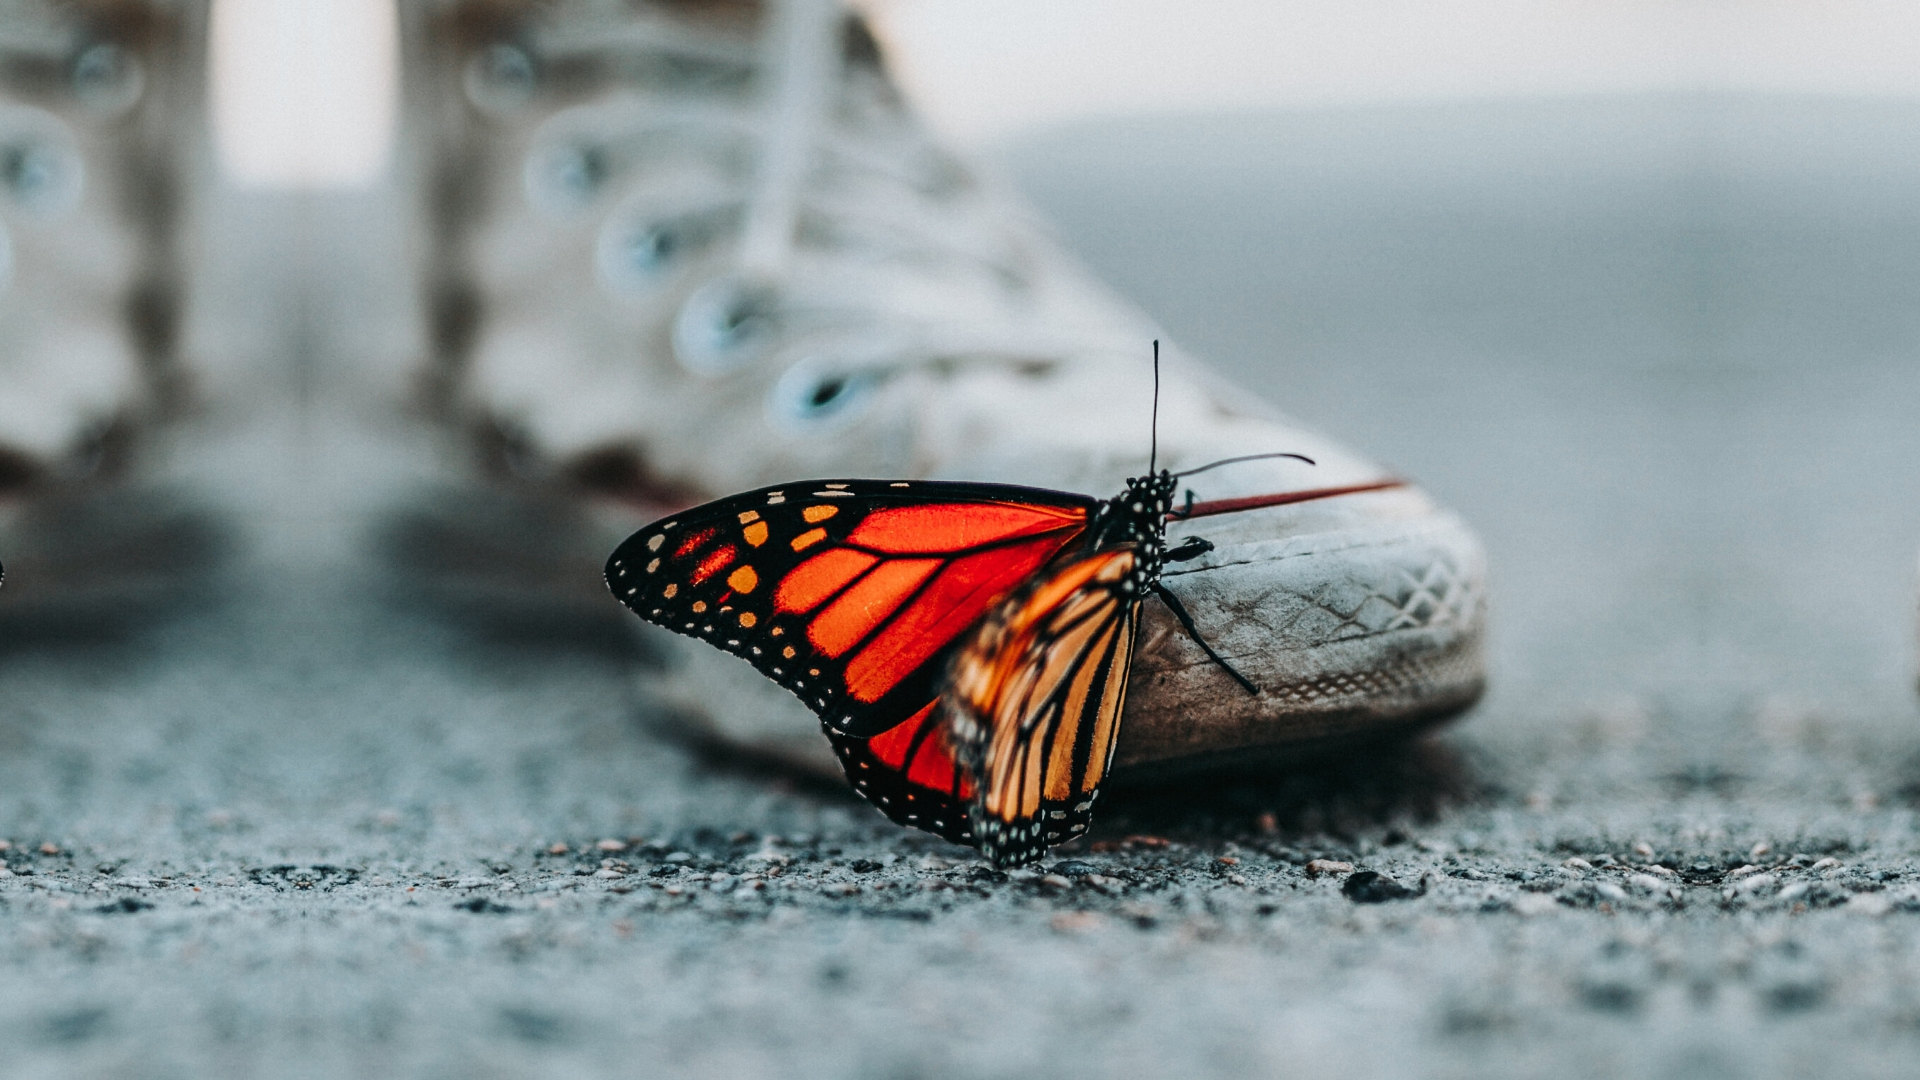 Restoring joy to our hearts - image of a bright orange butterfly on the tip of worn out converse sneakers on a grey, dusty backdrop